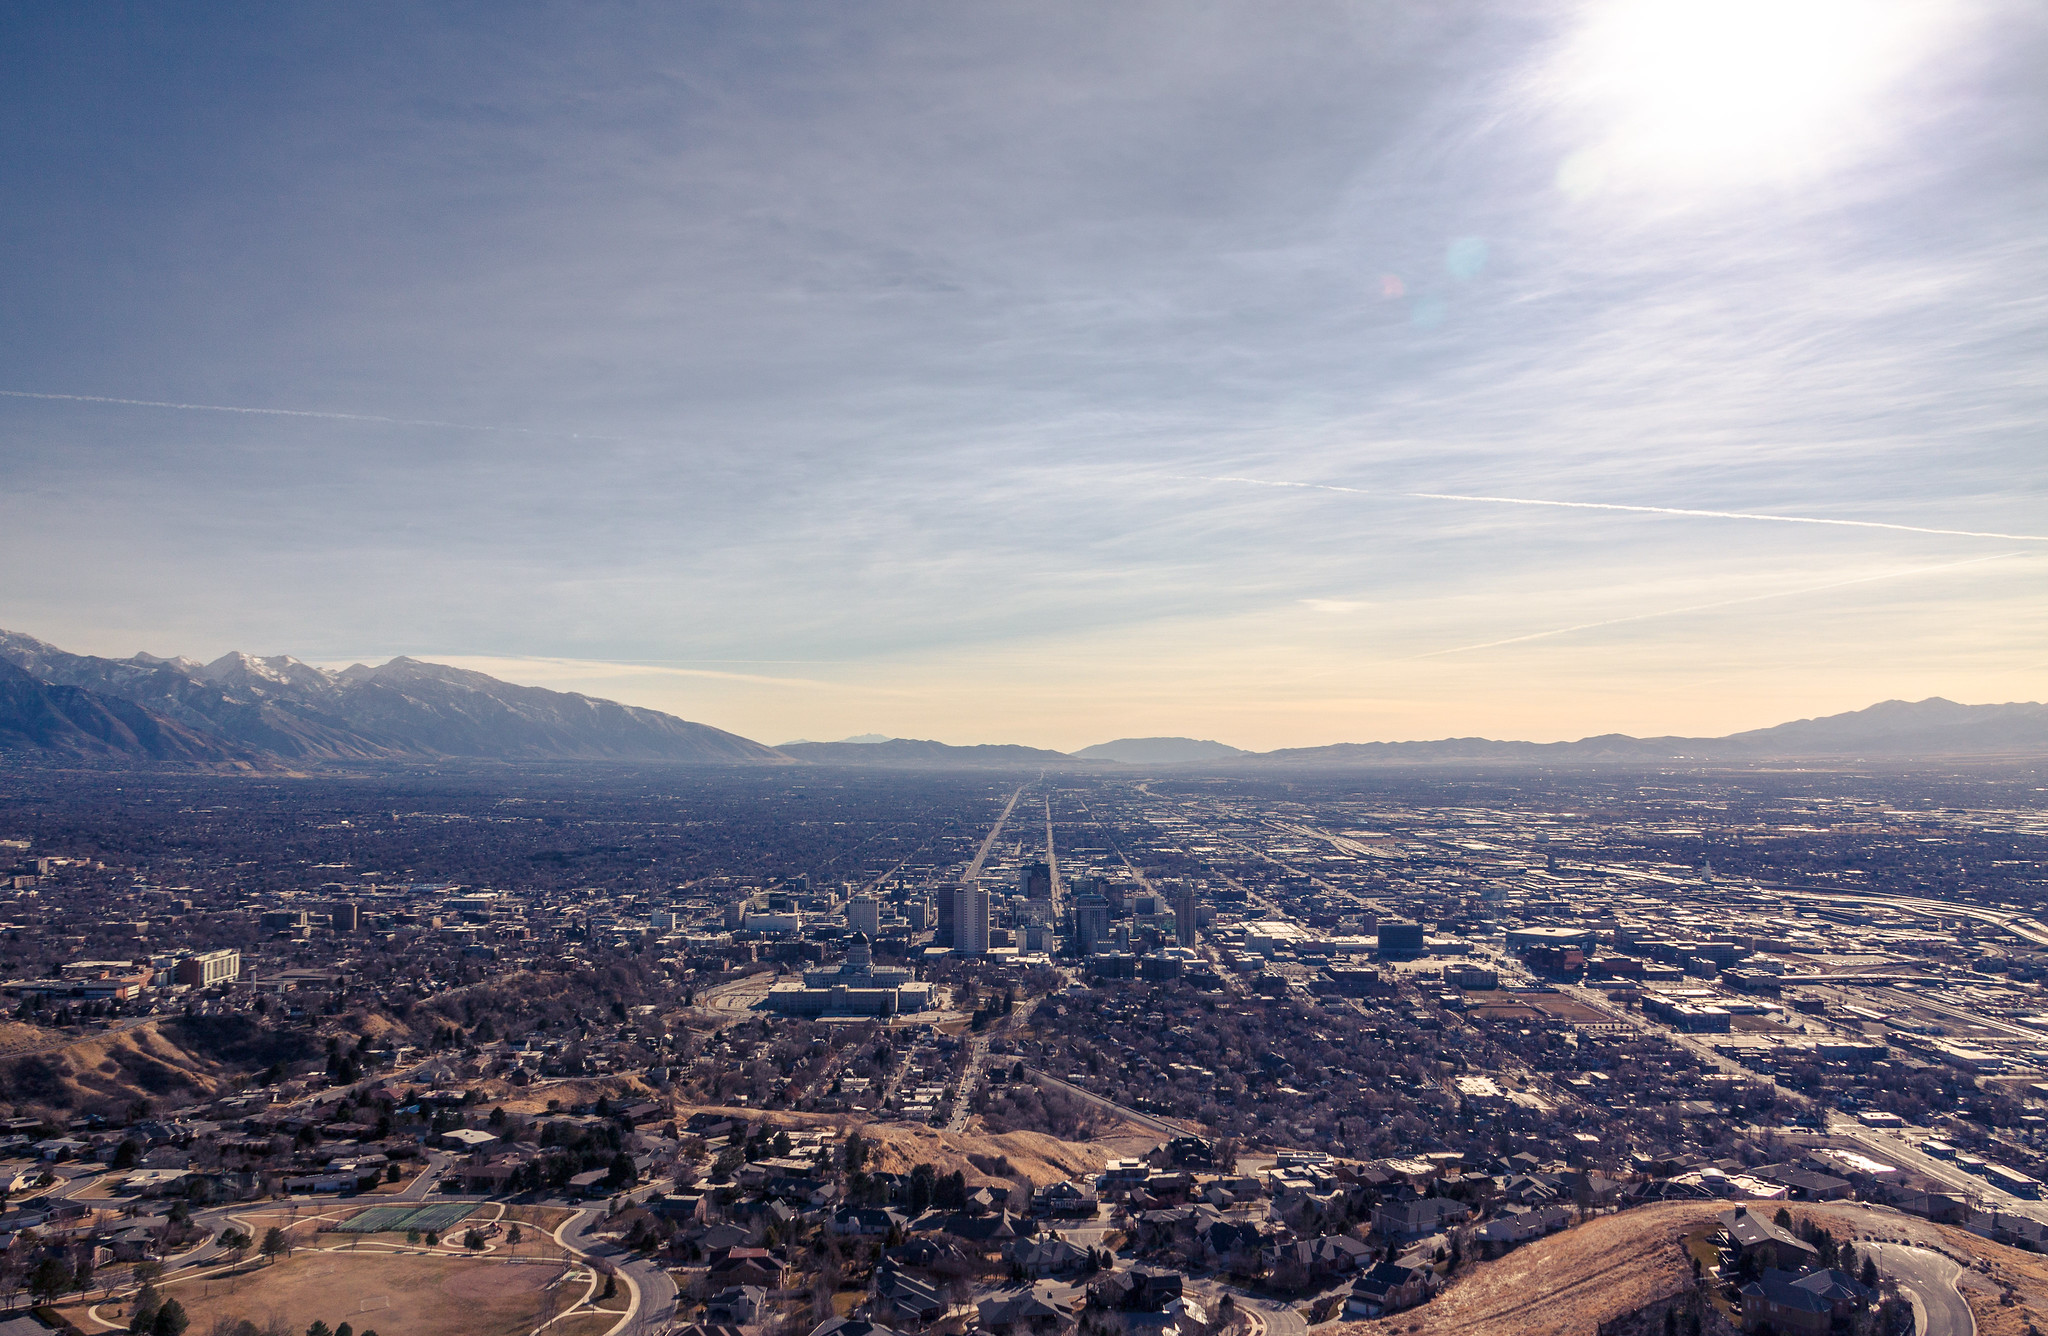 Salt Lake City as seen from Ensign Peak